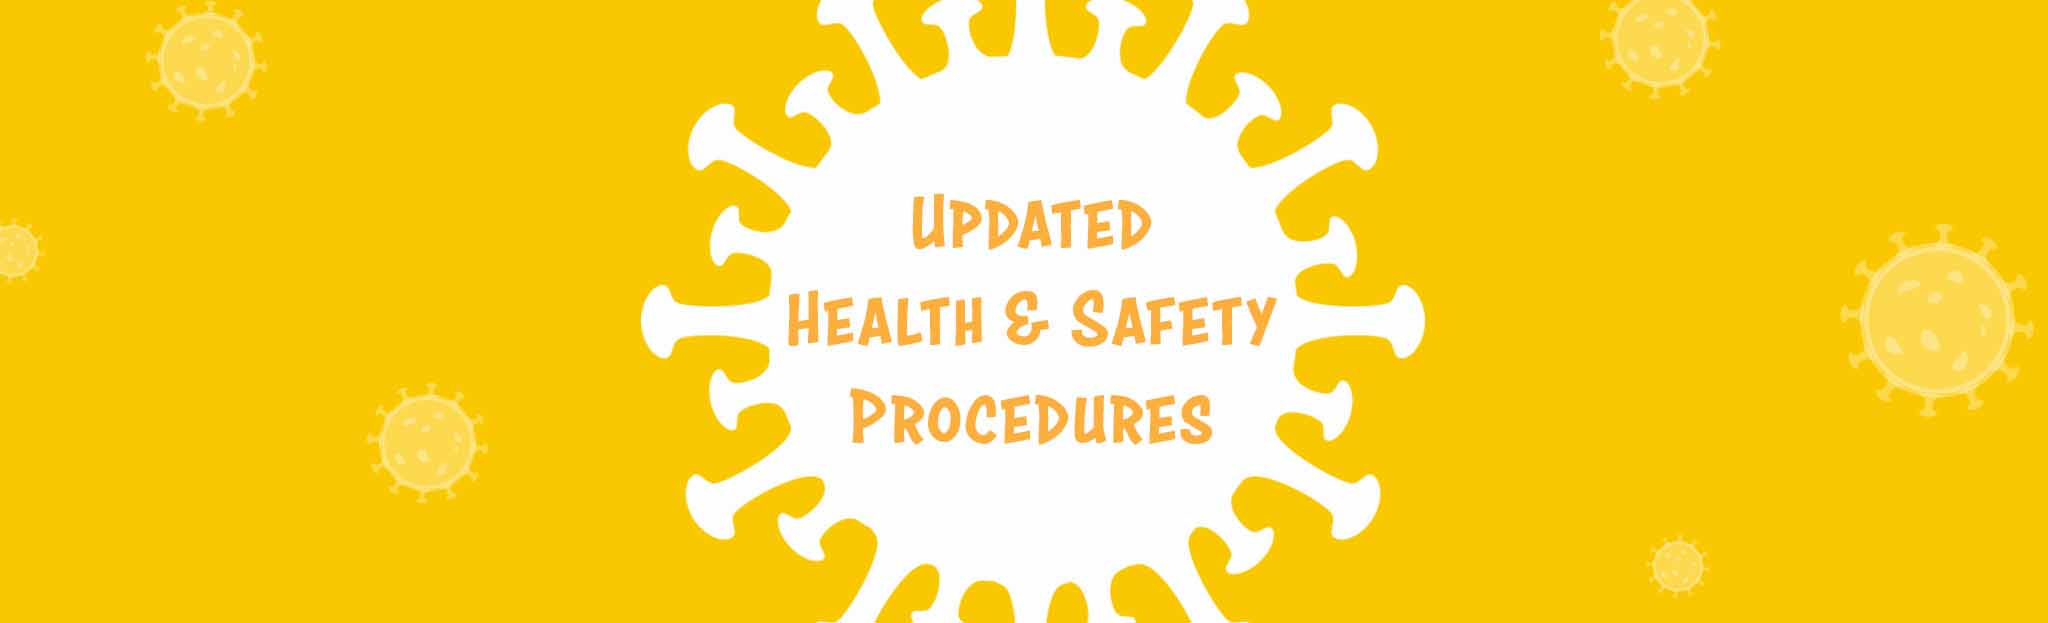 Reopening After COVID-19: Updated Health & Safety Procedures